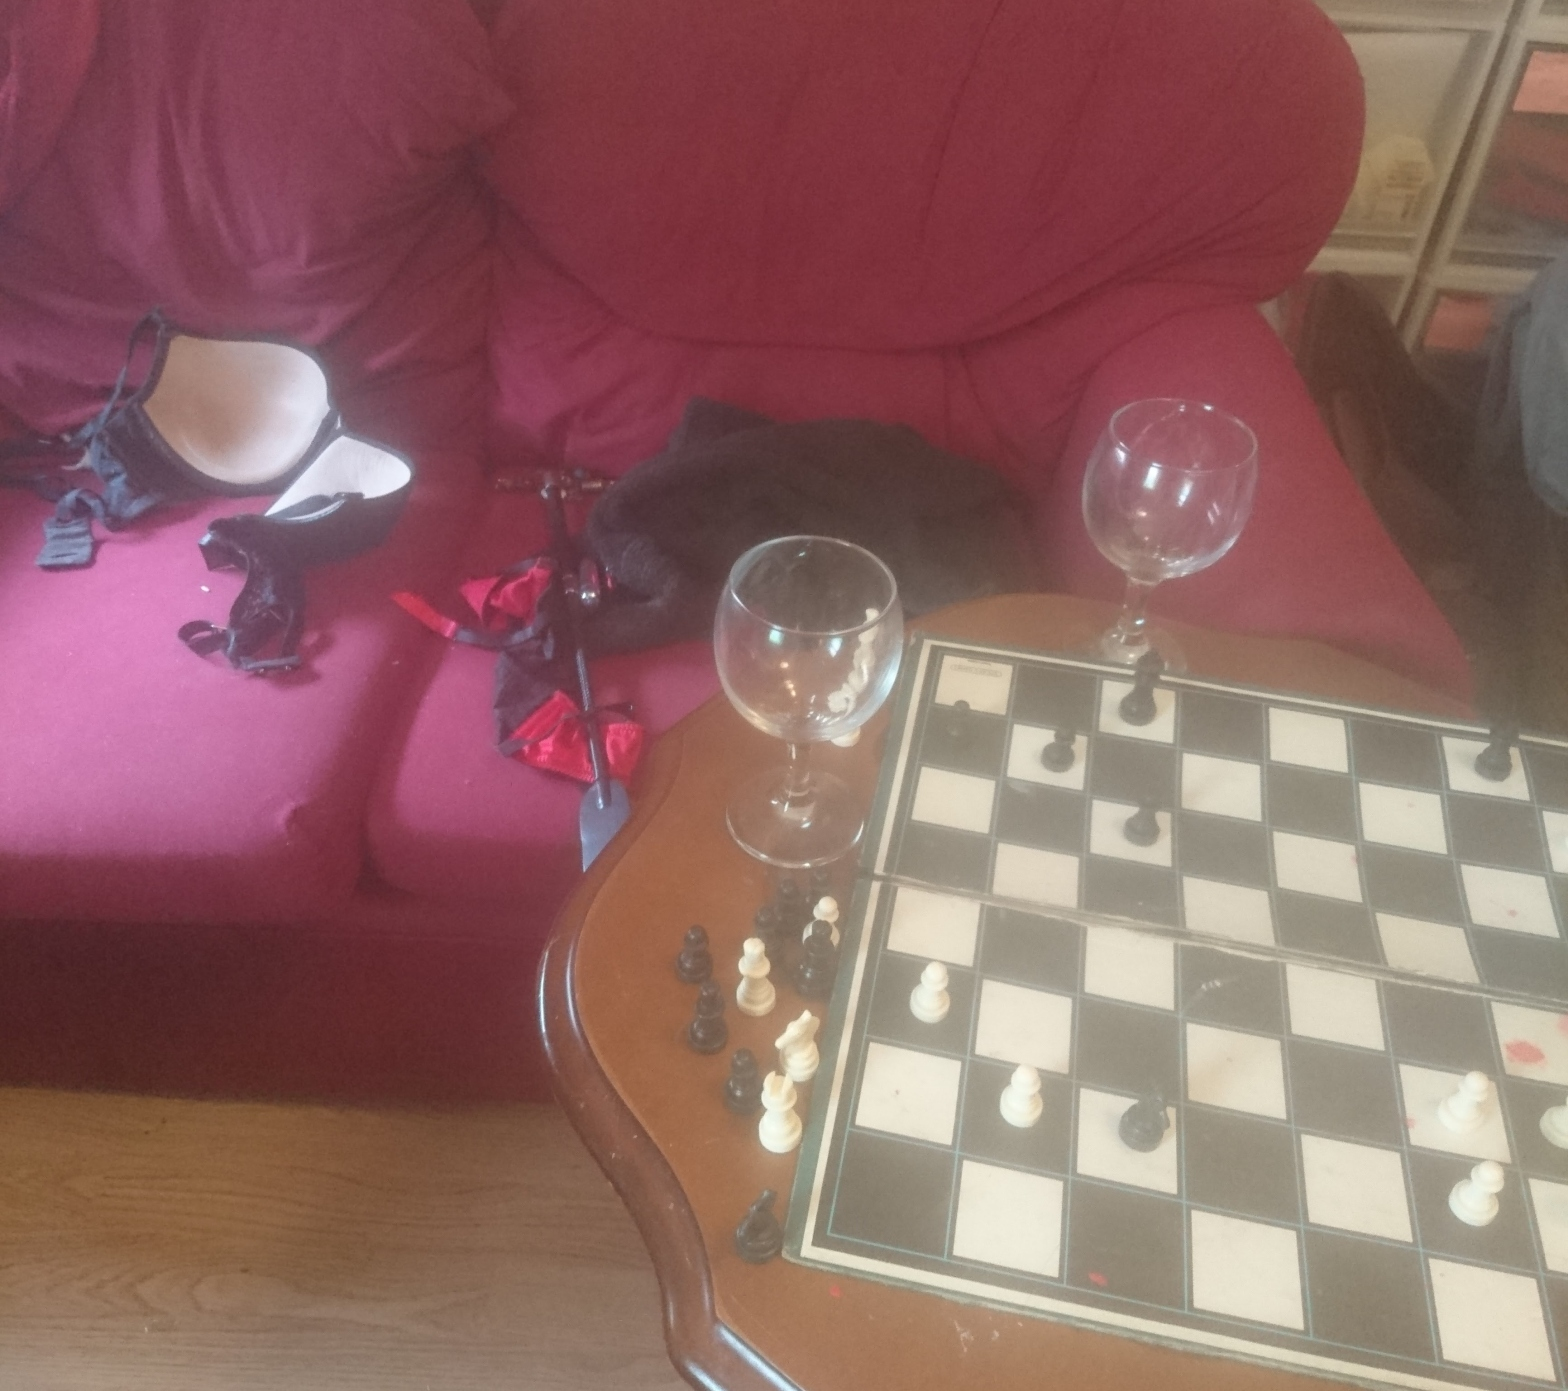 Chessboard, wine glasses, paddle, underwear